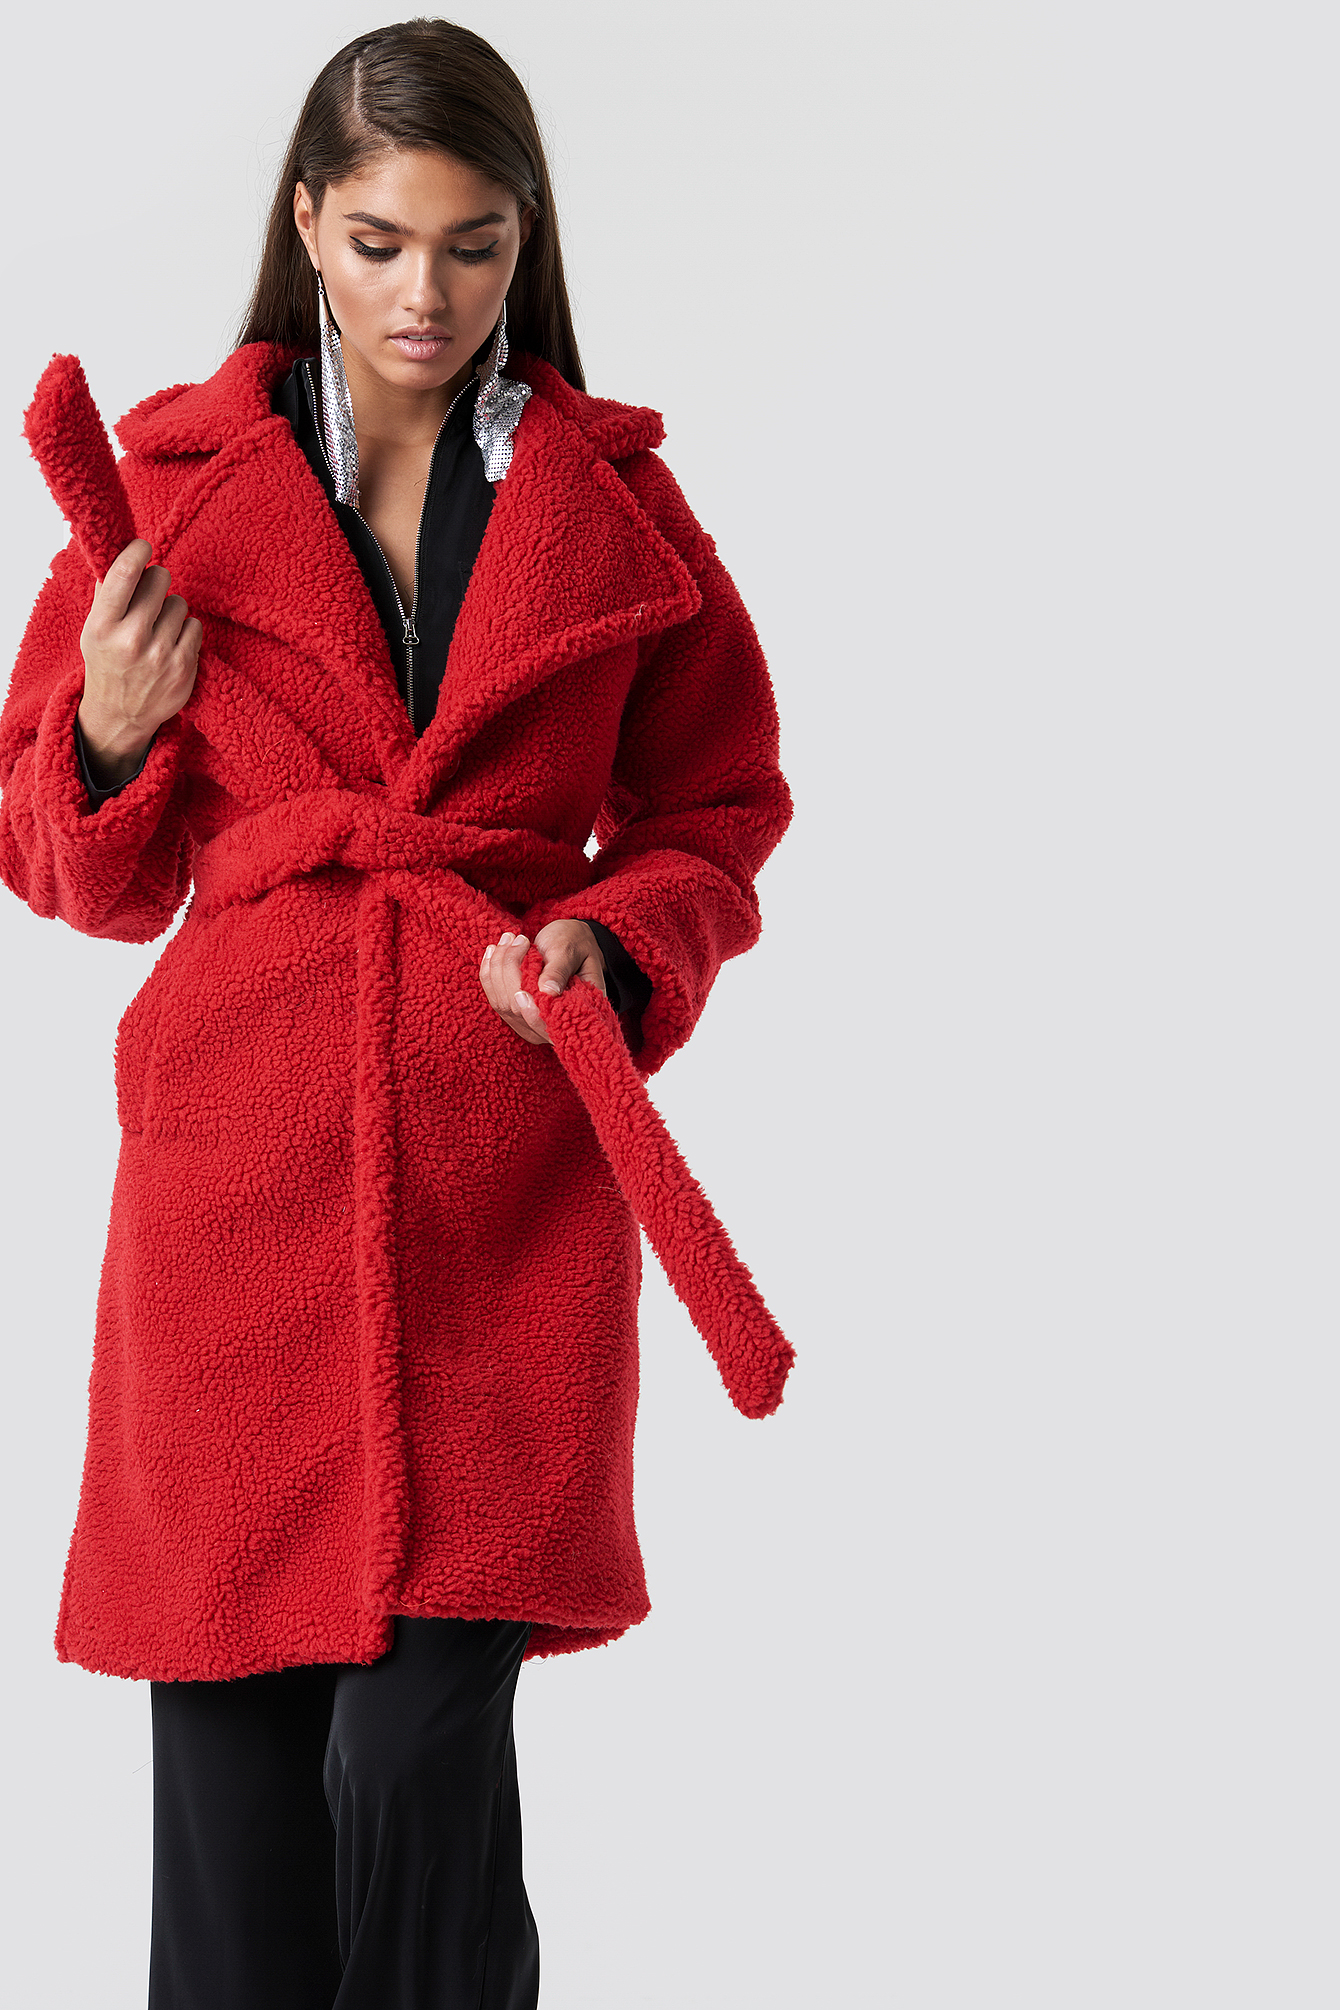 hannalicious x na-kd -  Midi Teddy Coat - Red